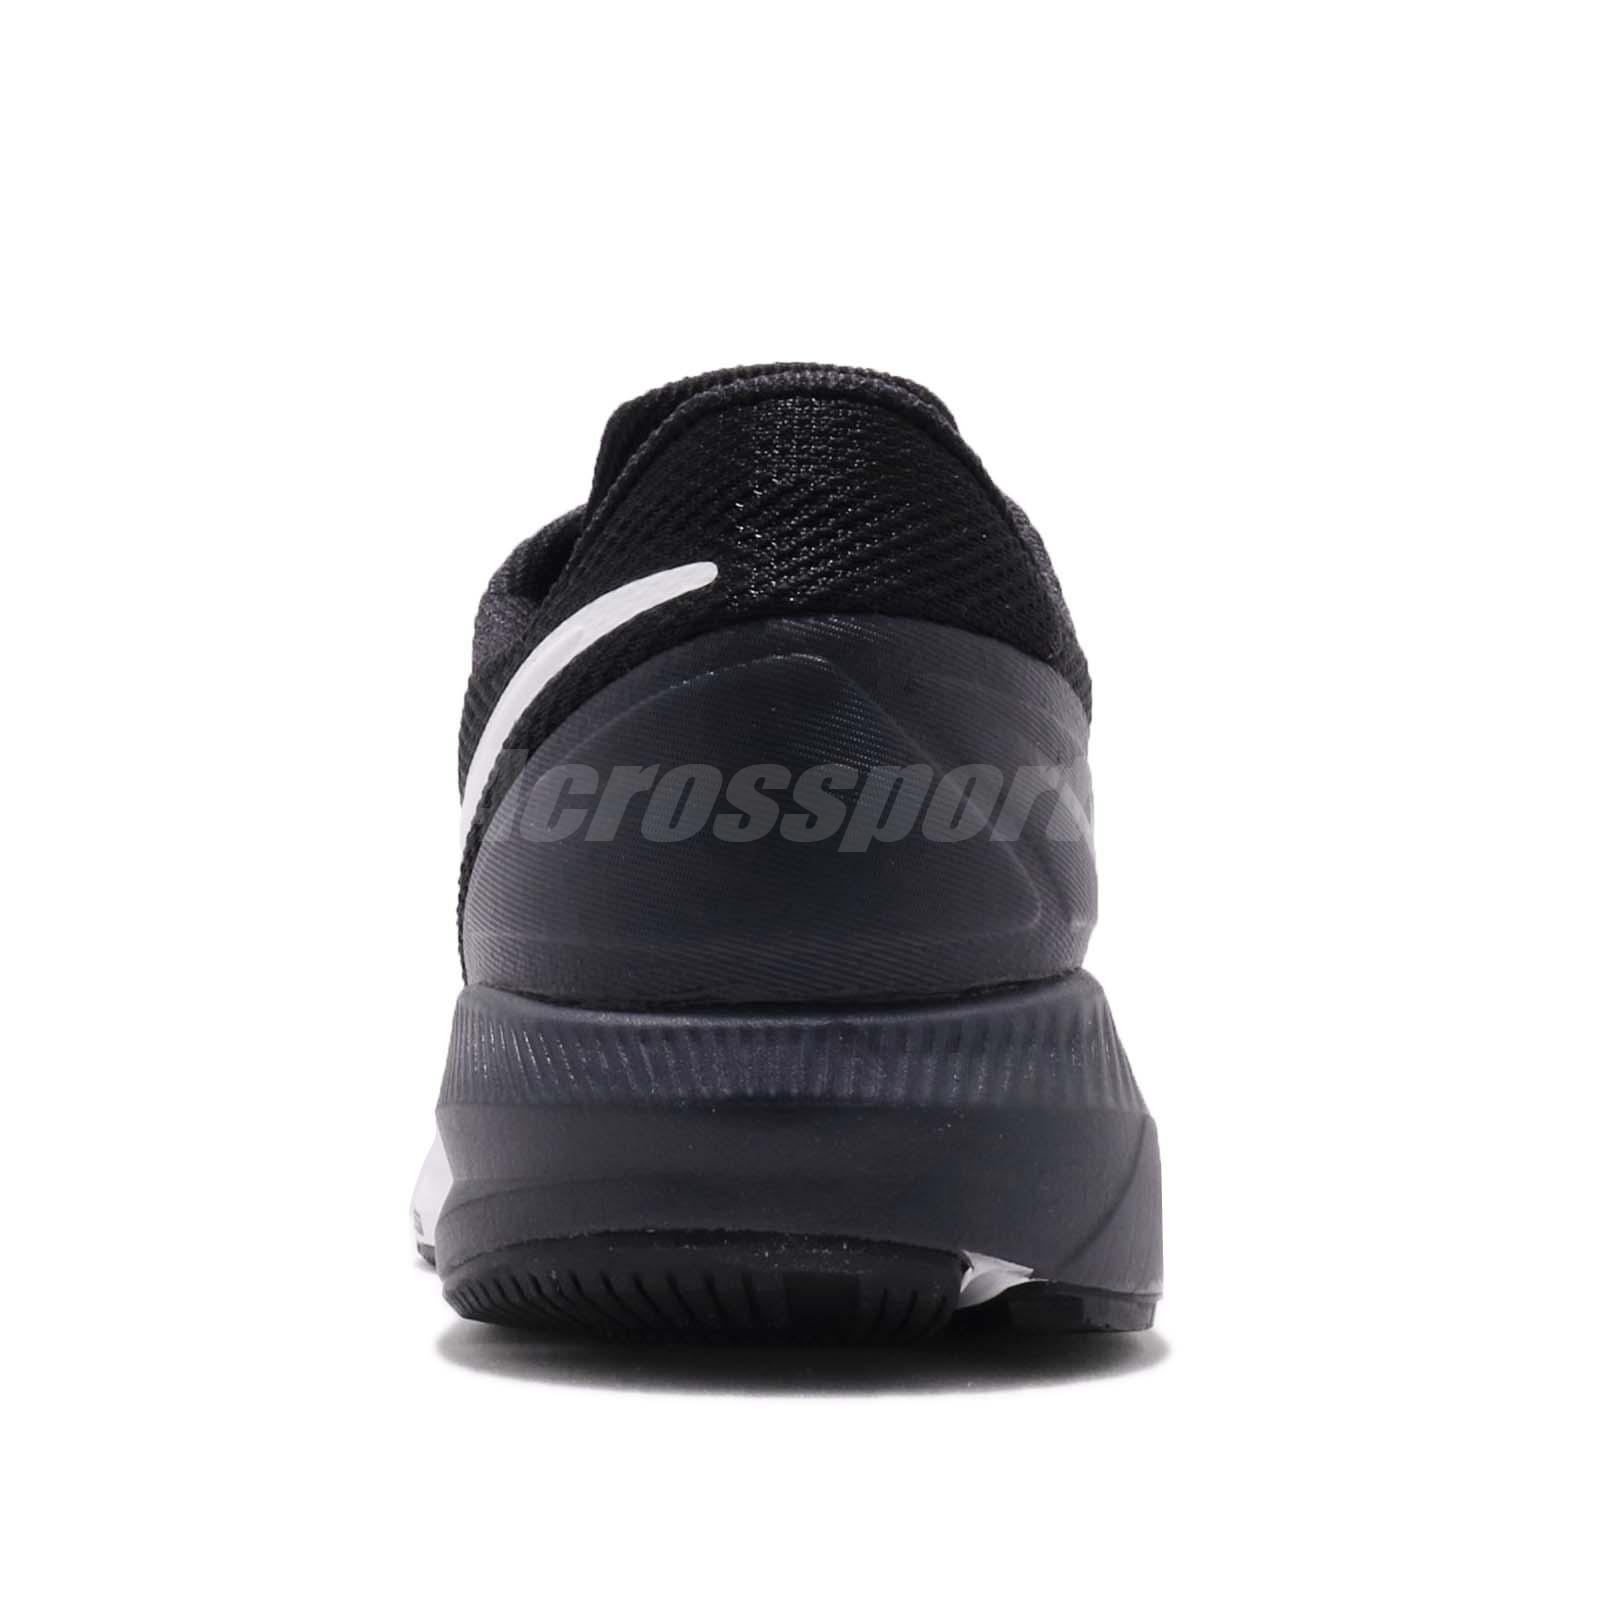 uk availability 83e99 77af1 Condition  Brand New With Box